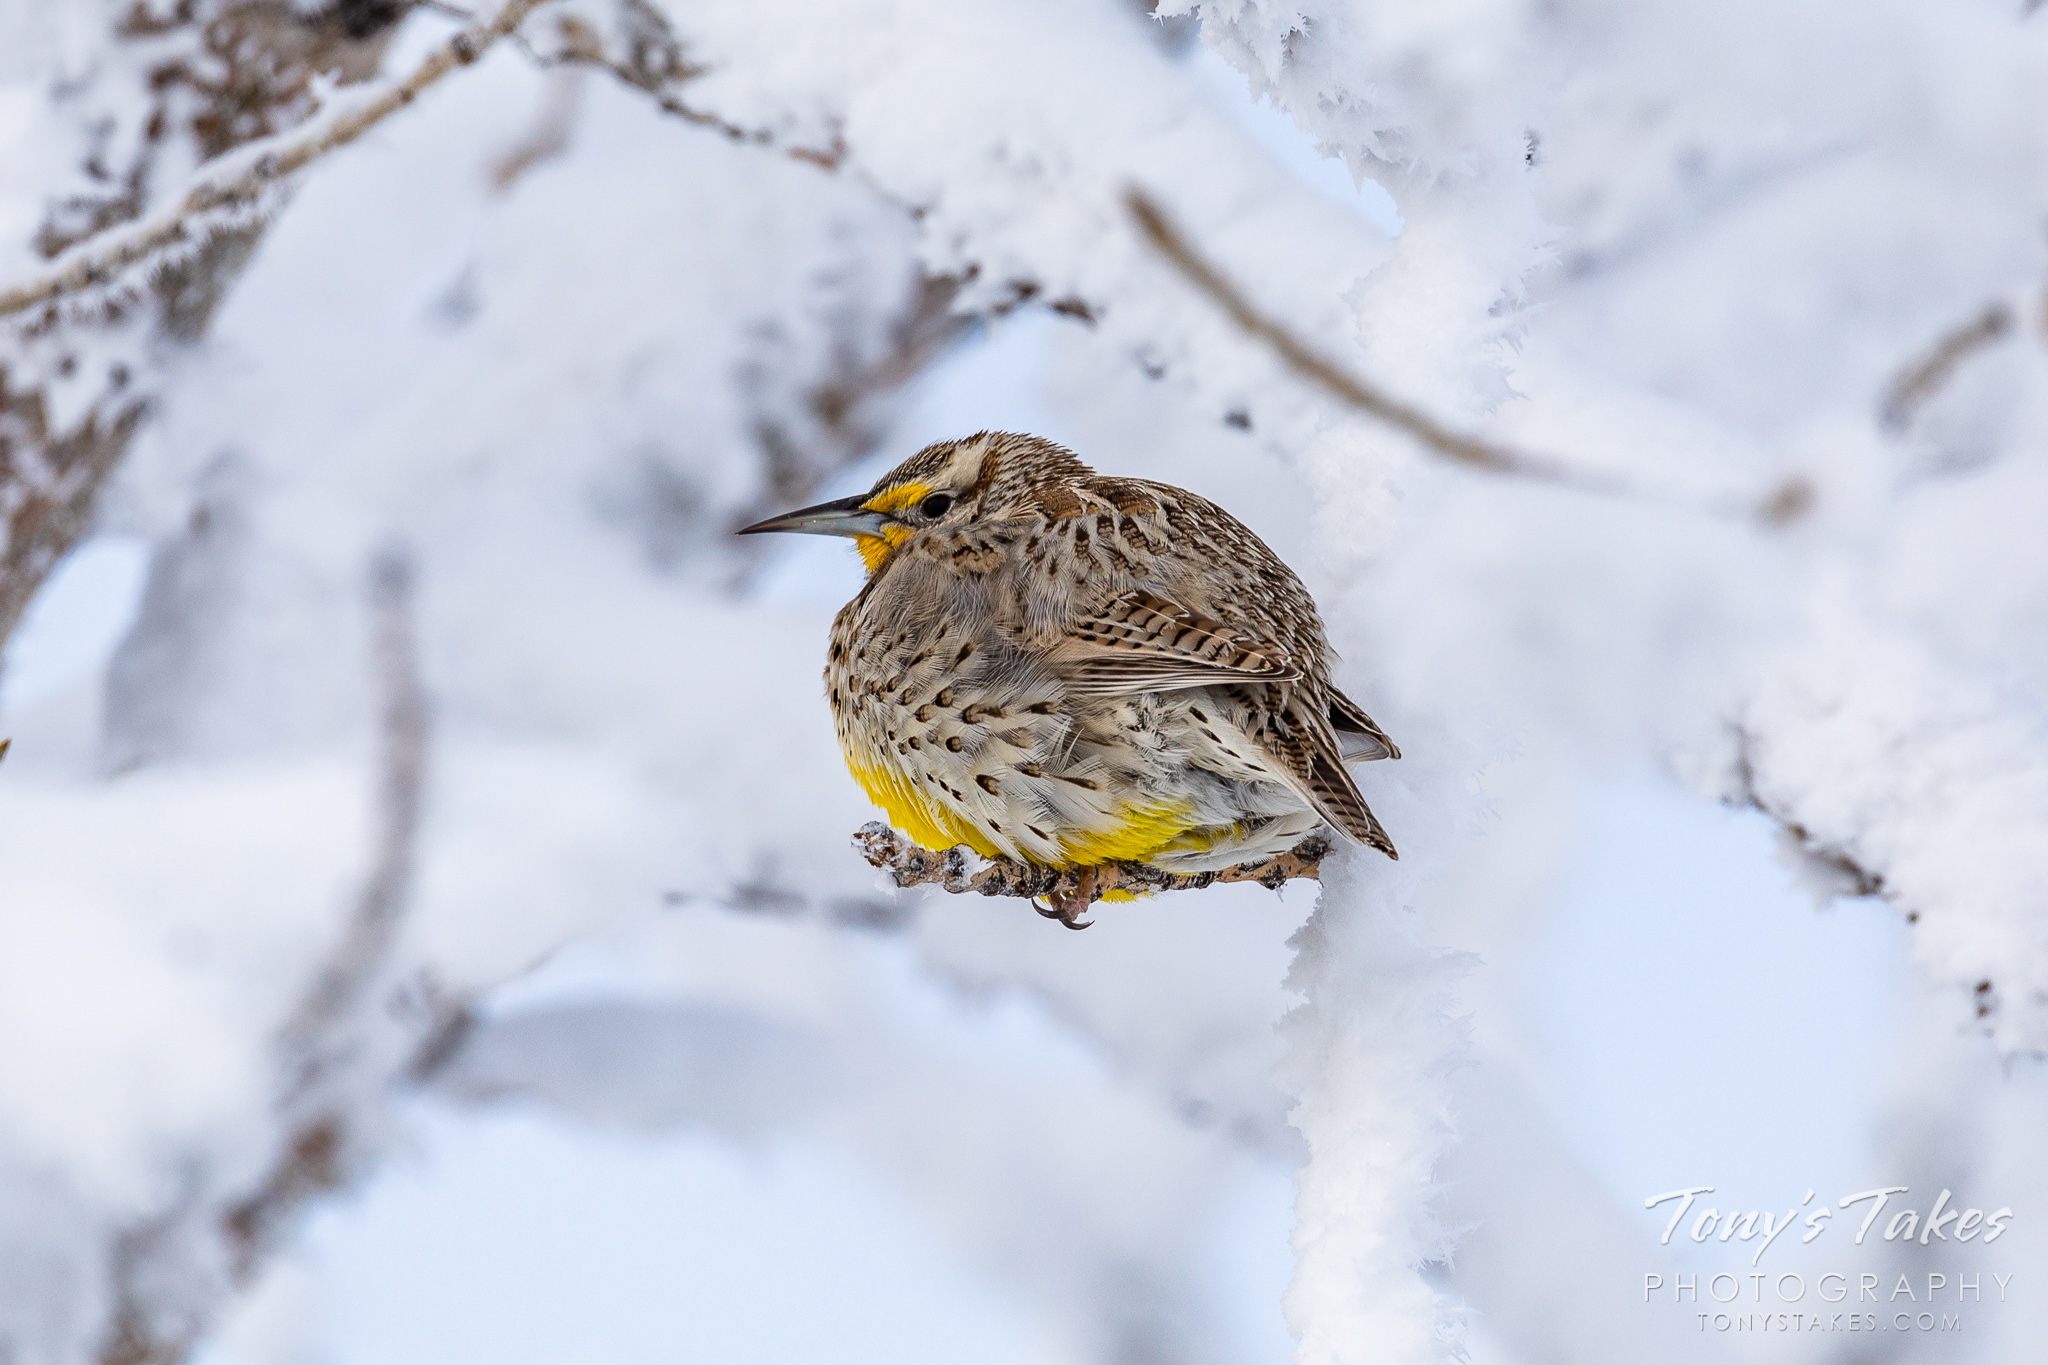 Western meadowlark chills out in a frost-covered tree